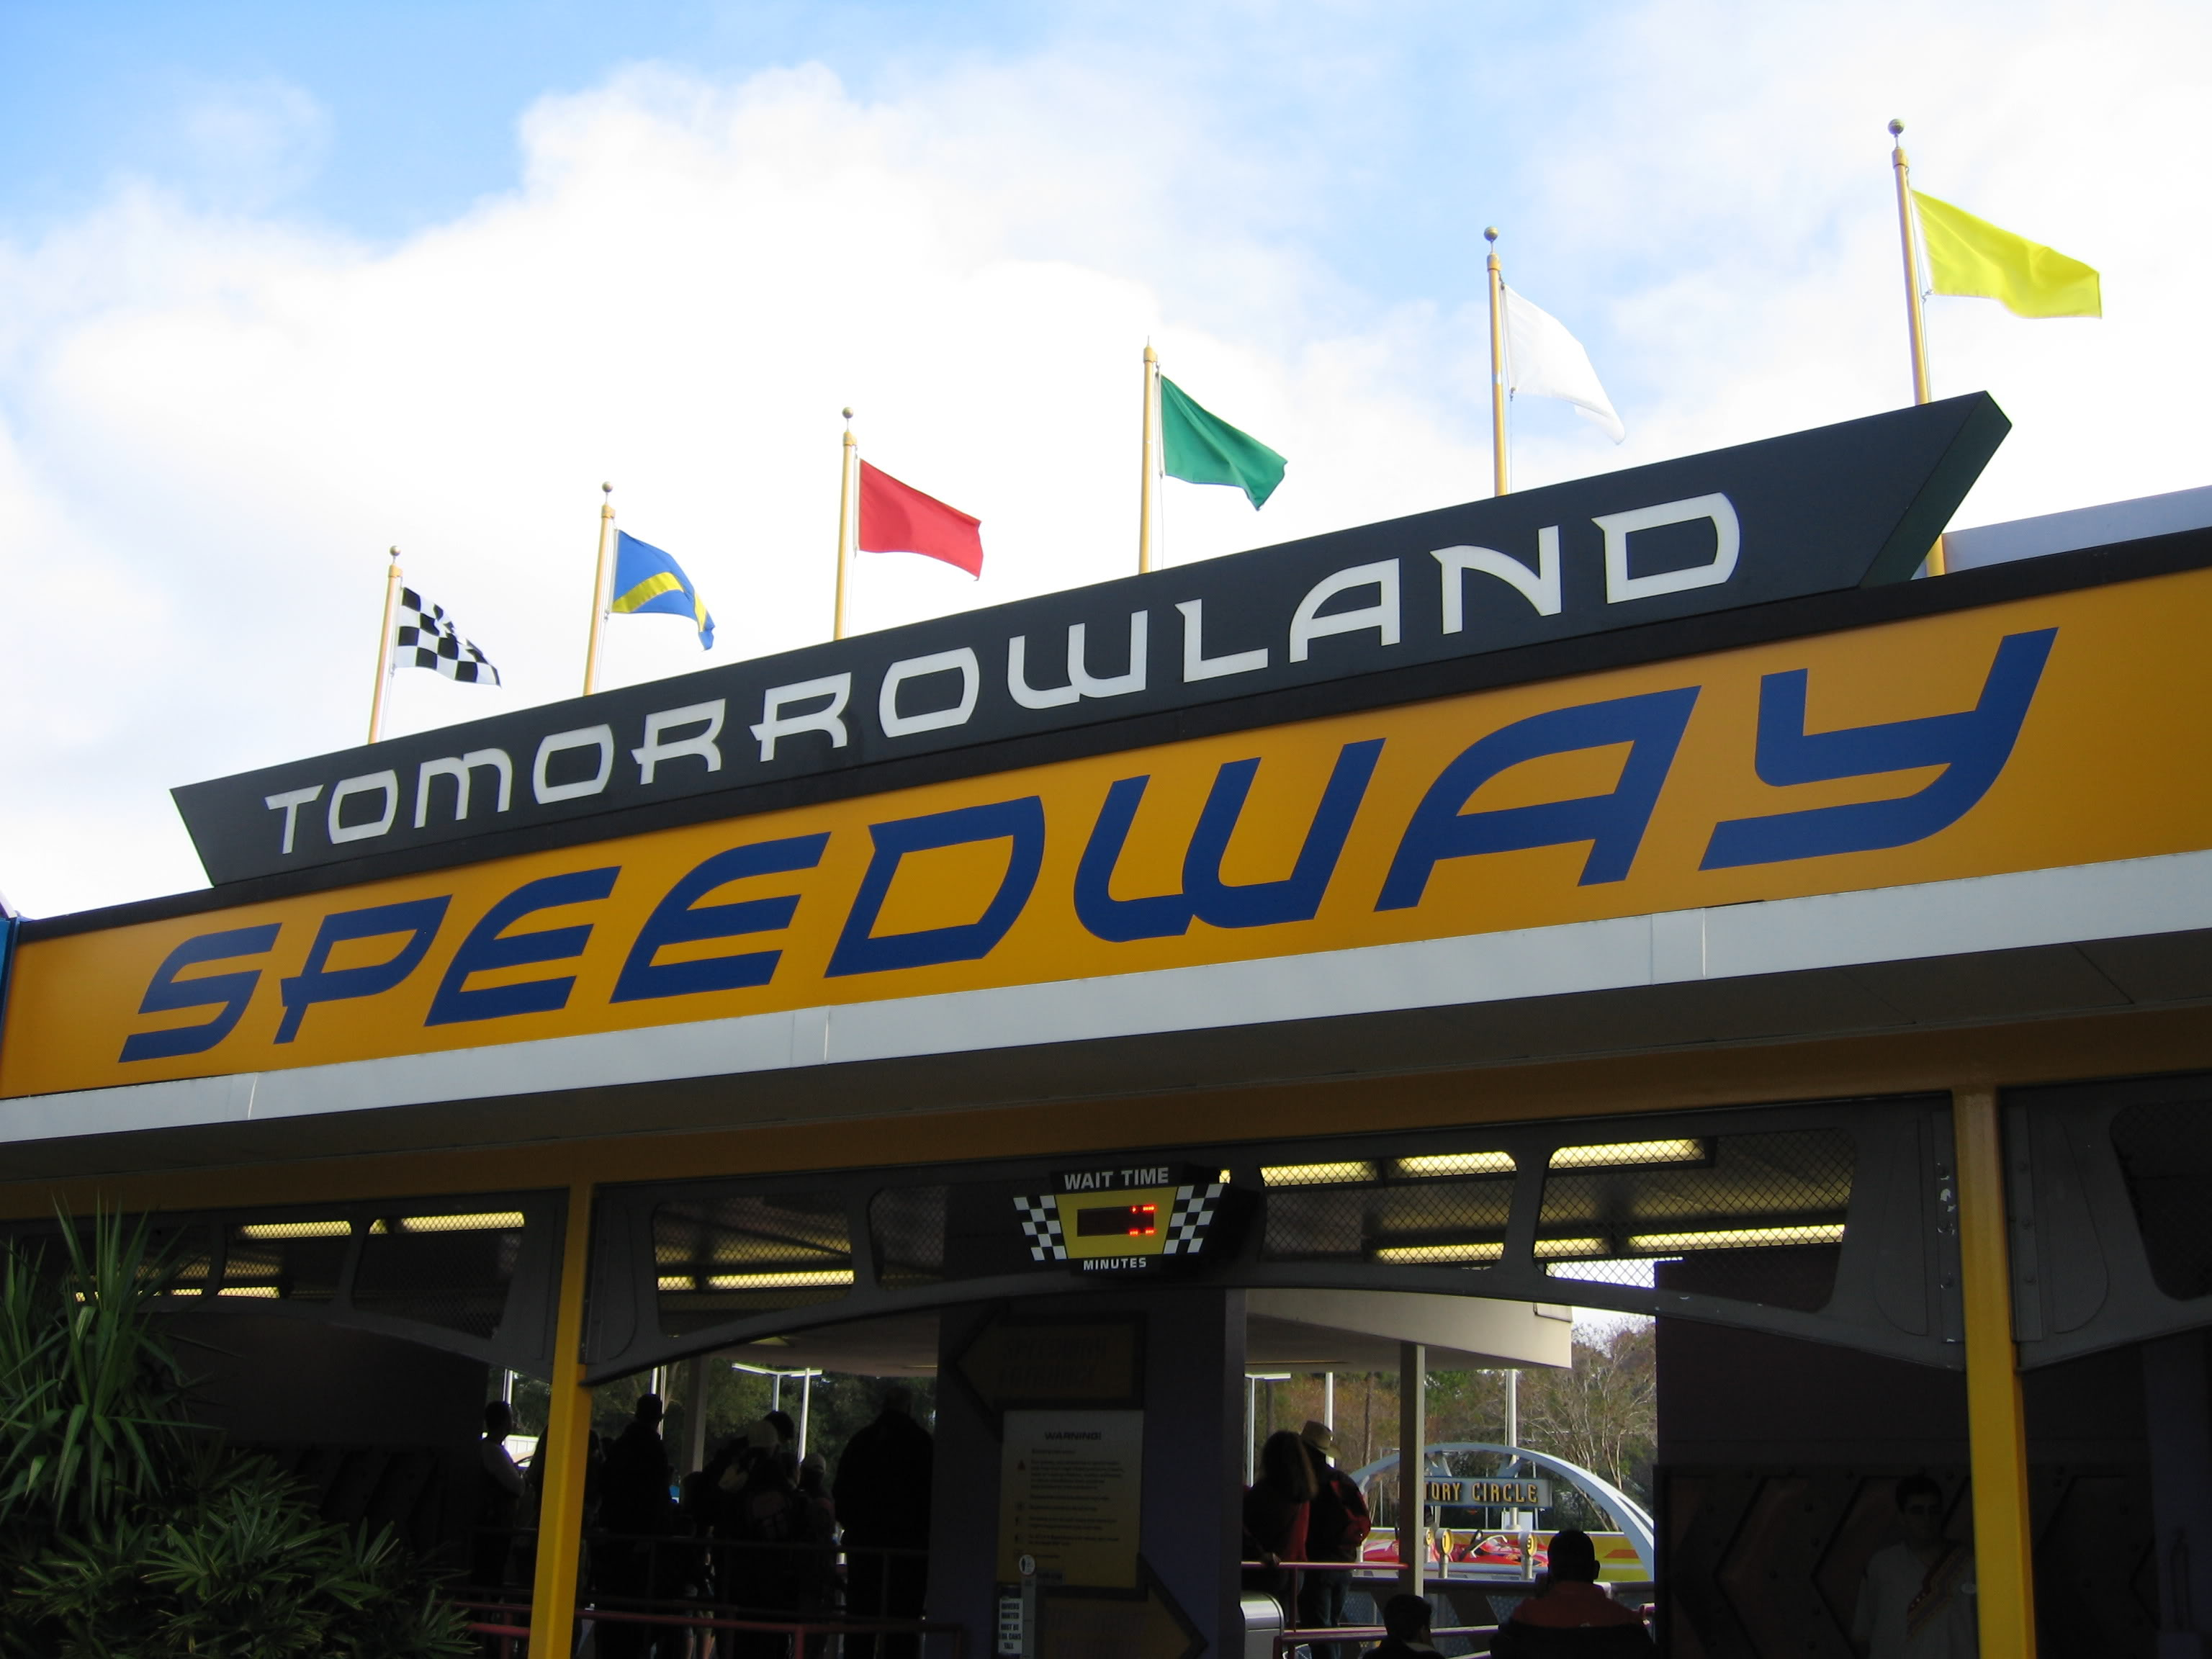 indy-speedway-sign